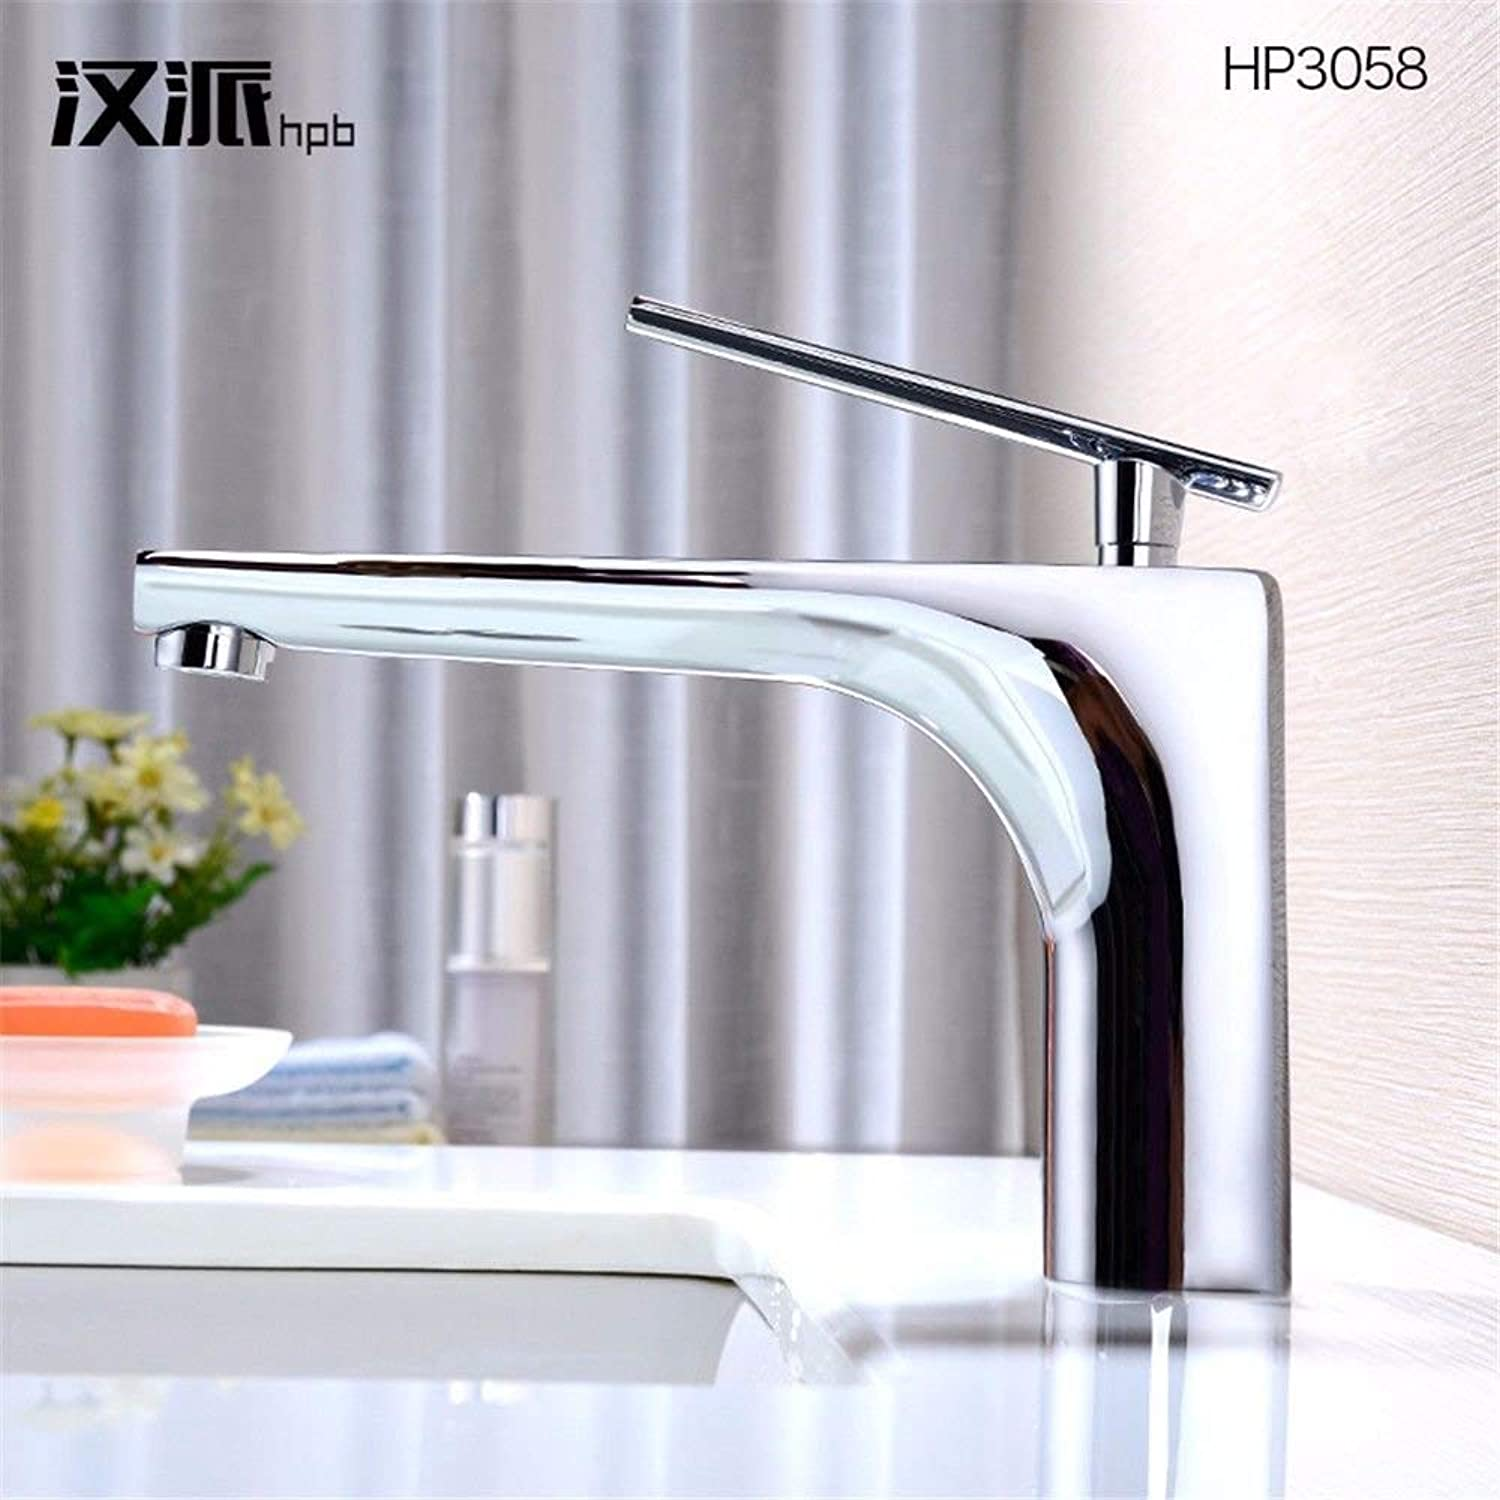 WMING HOME Sink Mixer Tap Bathroom Kitchen Basin Tap Leakproof Save Water Copper Cold And Hot Tub